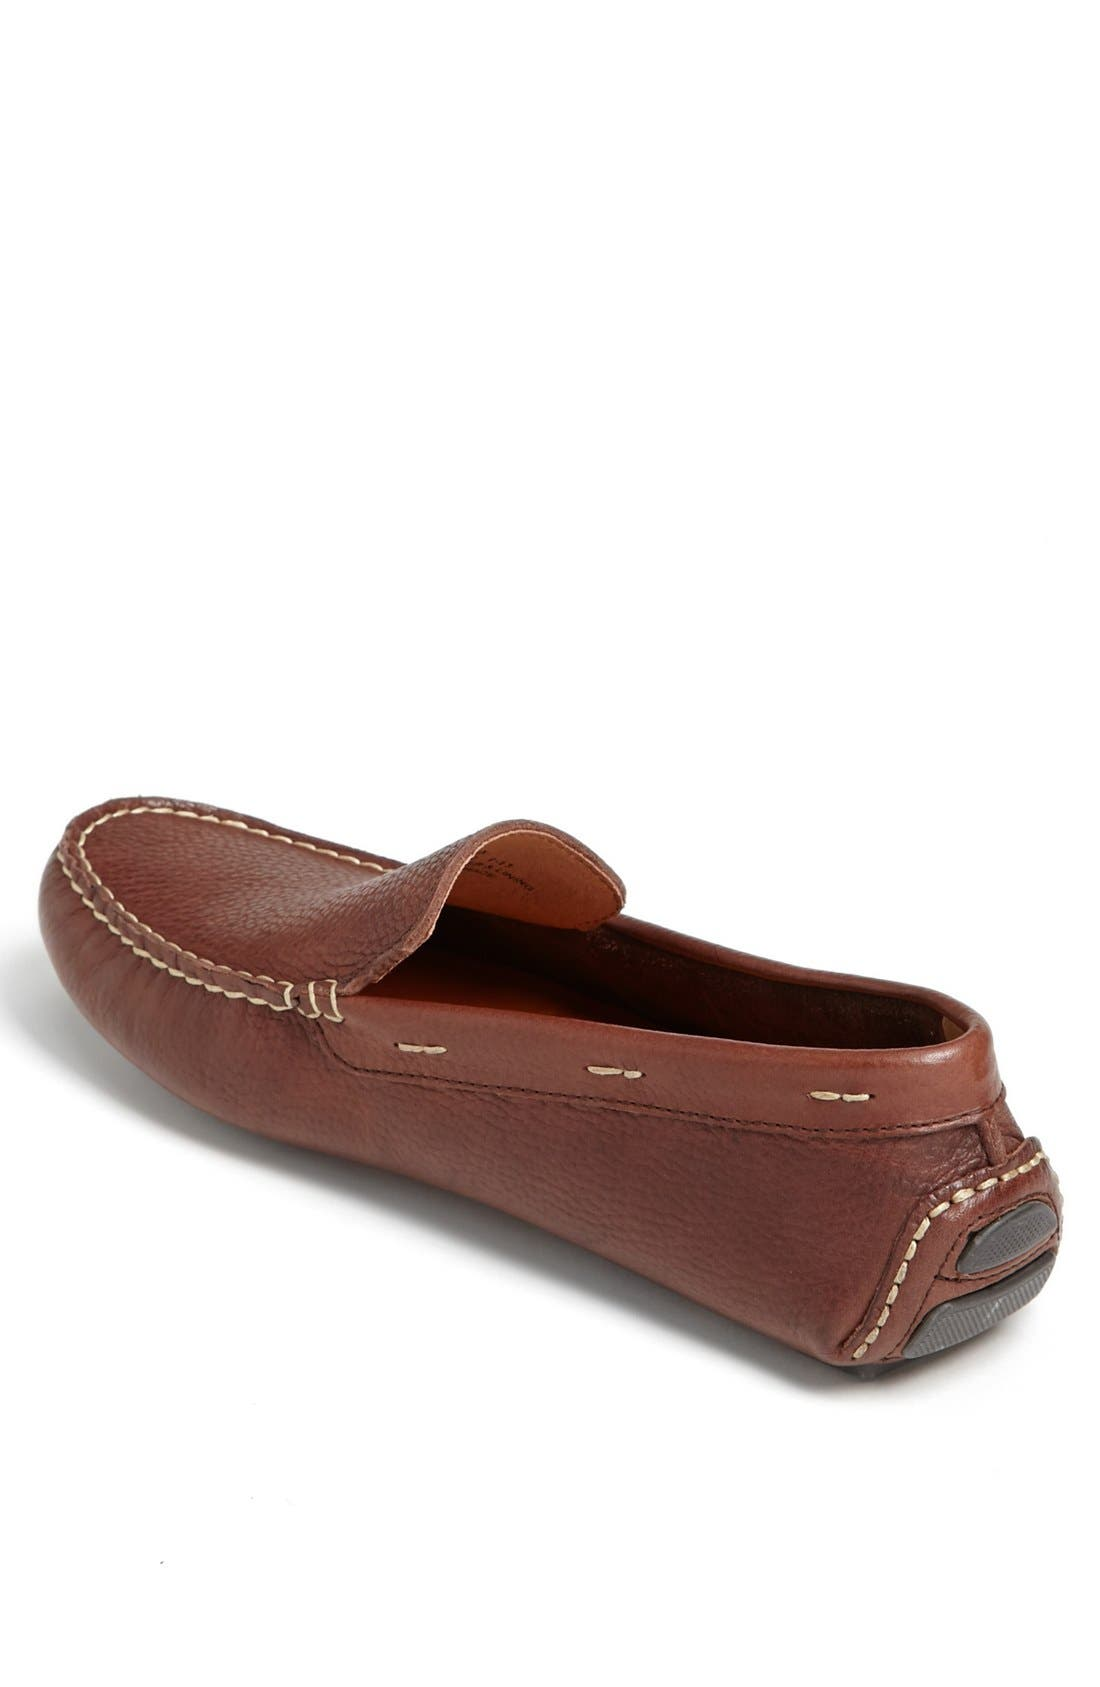 Alternate Image 2  - Tommy Bahama 'Pagota' Driving Shoe